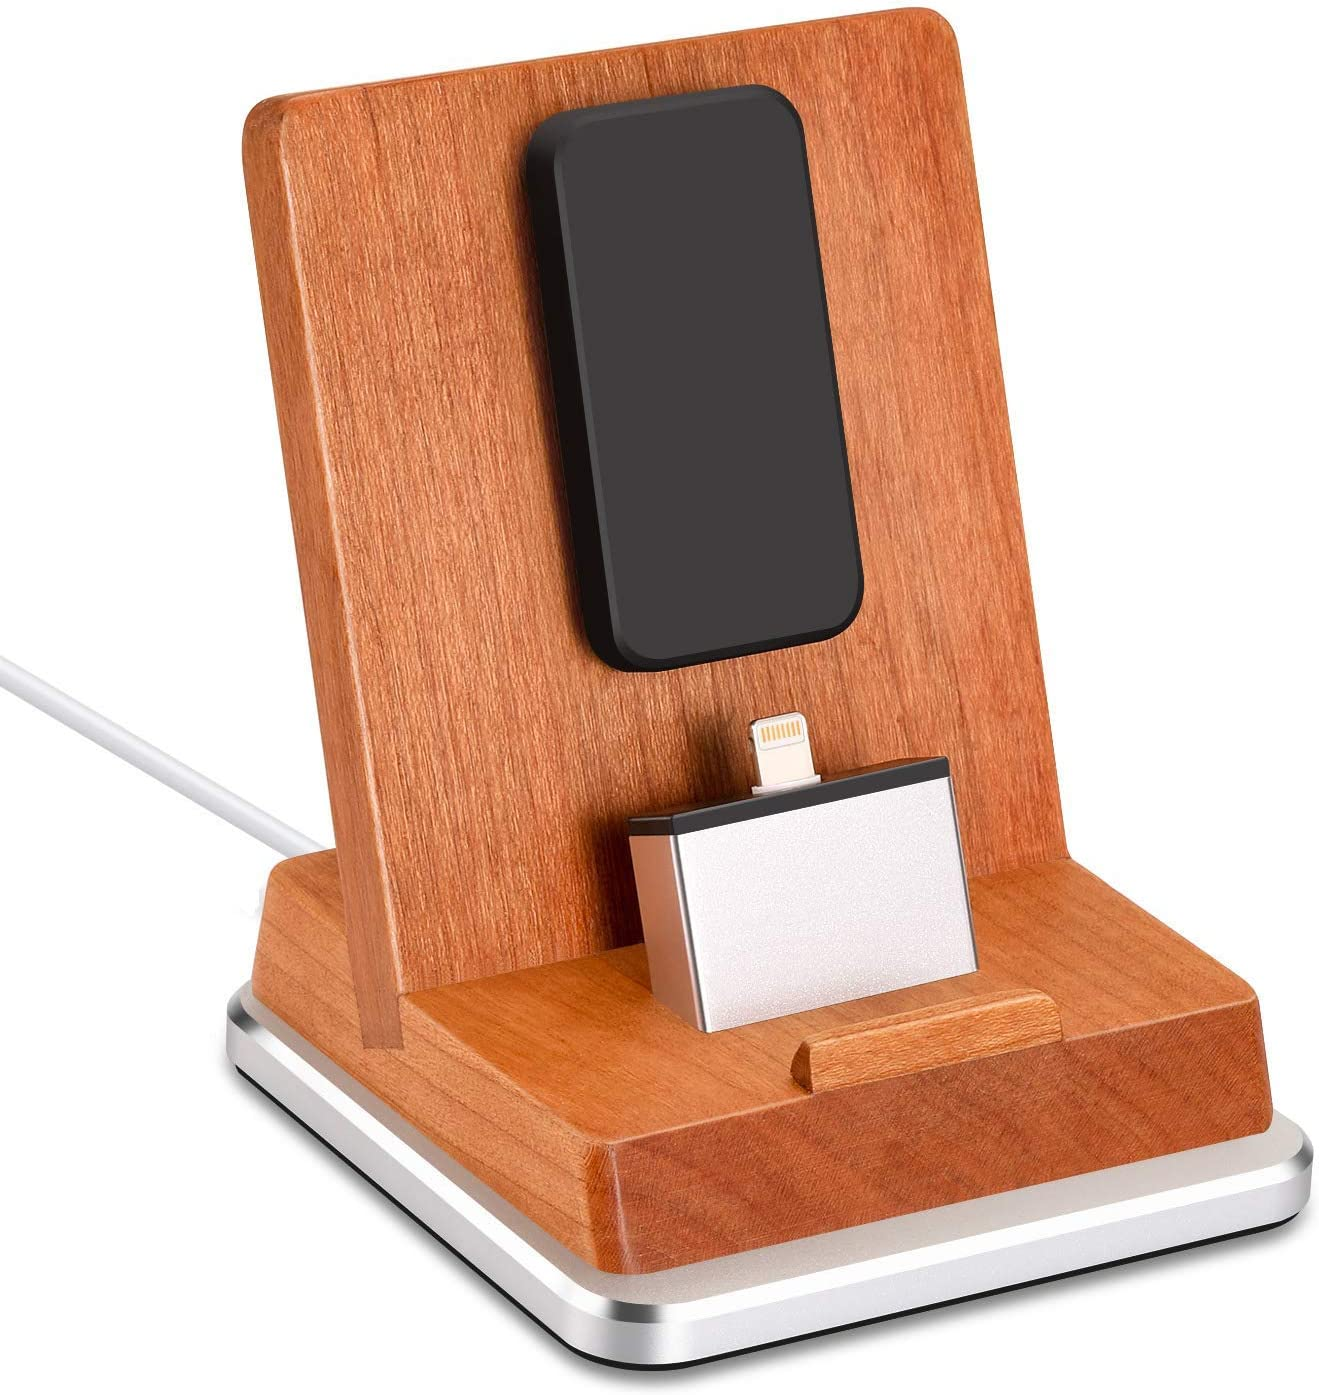 Bamboo iPhone Docking Station Charger Stand with Aluminum Base for All Versions of iPhone with Lightning Plug Rerii iPhone Charger Stand